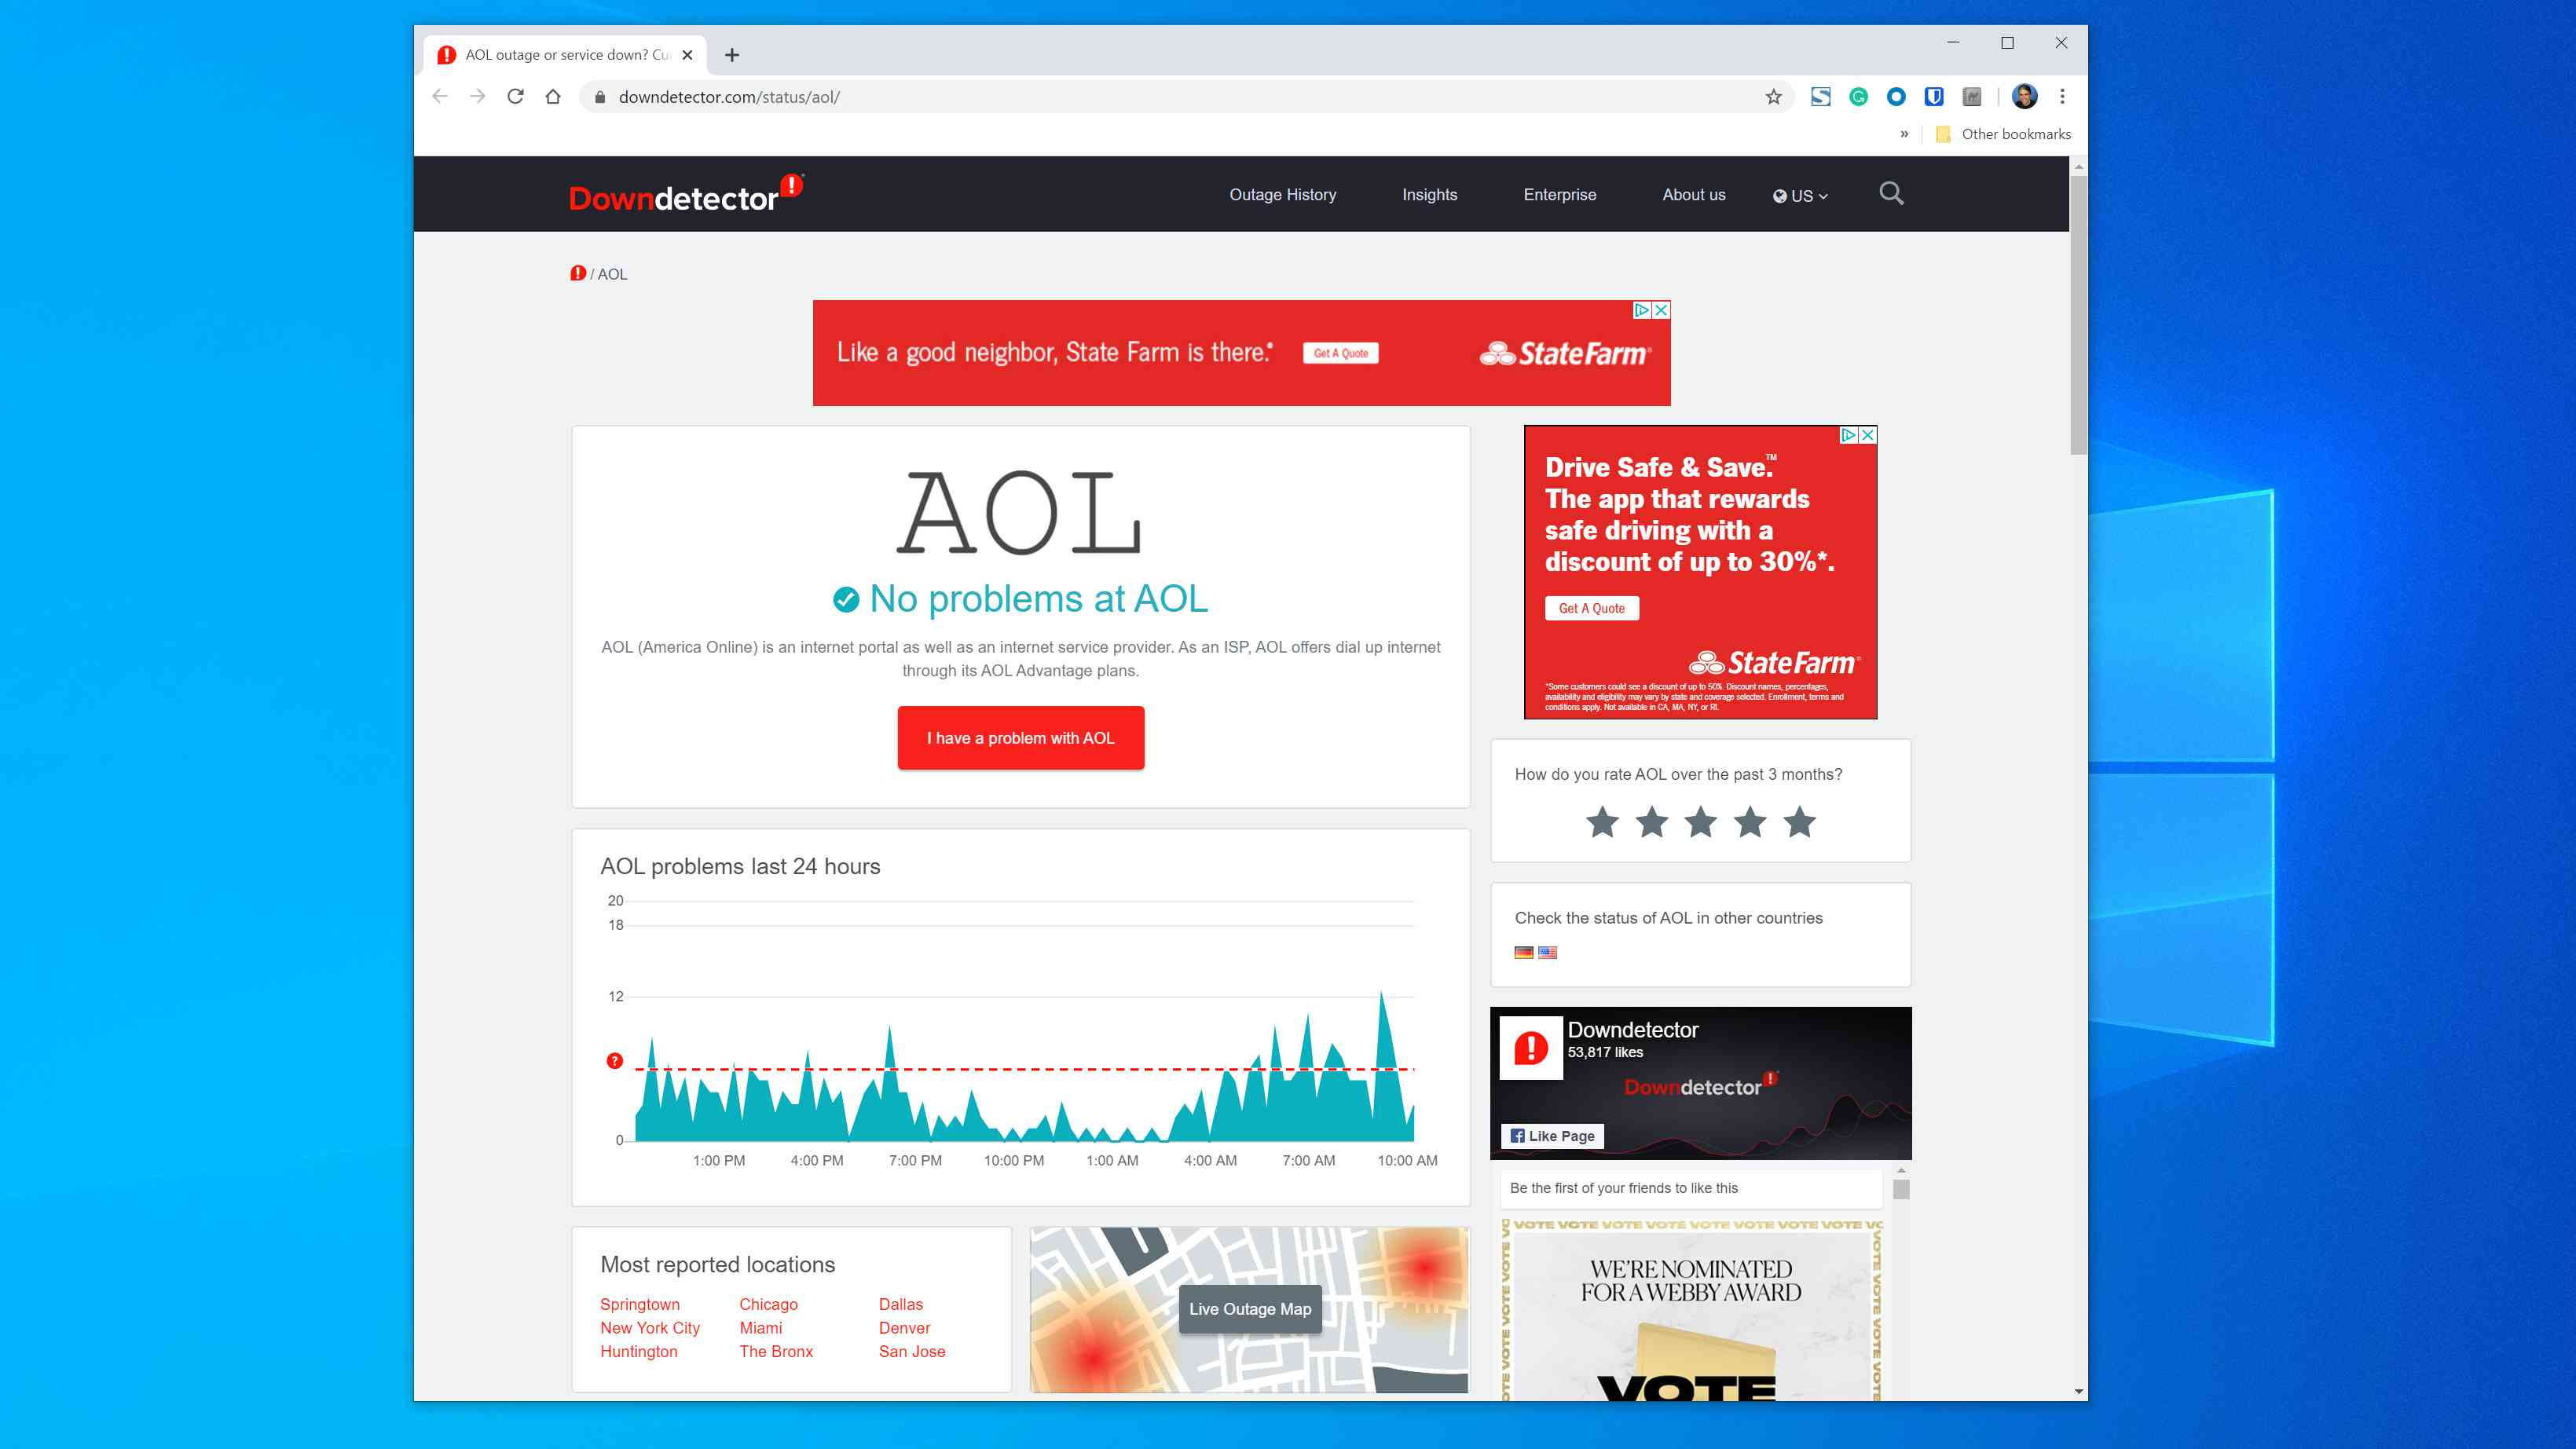 Downdetector.com showing the status of AOL